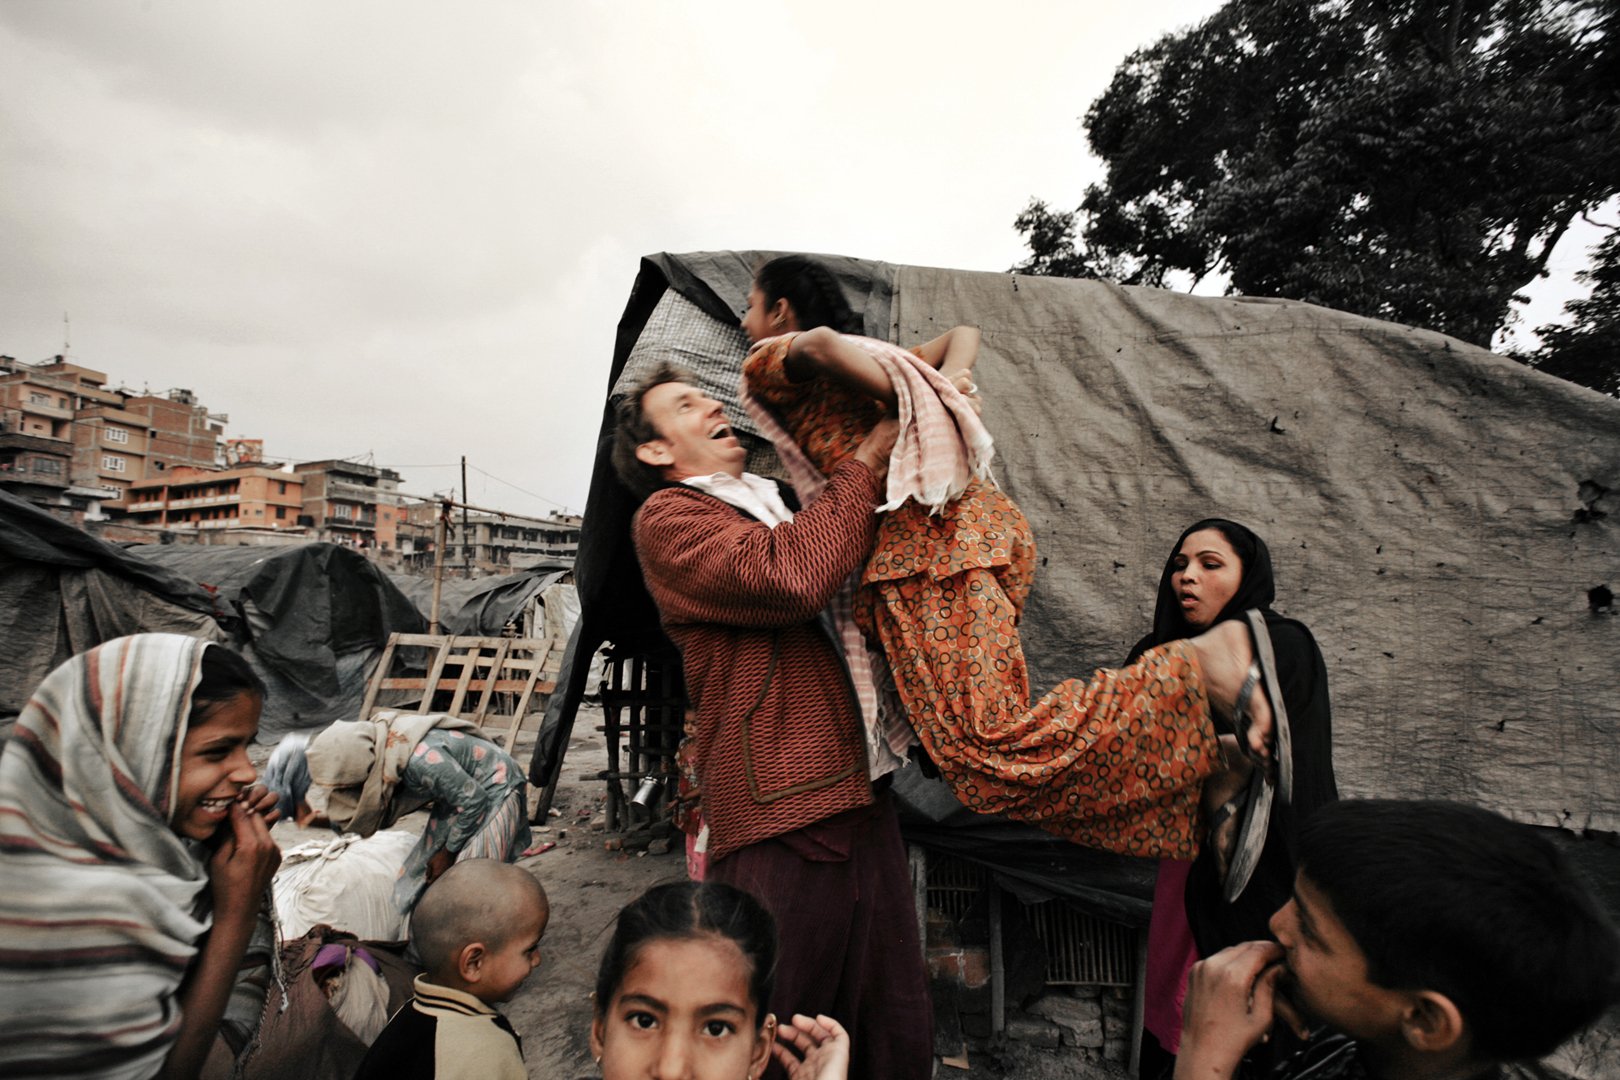 Begging Camp, Katmandu, Nepal